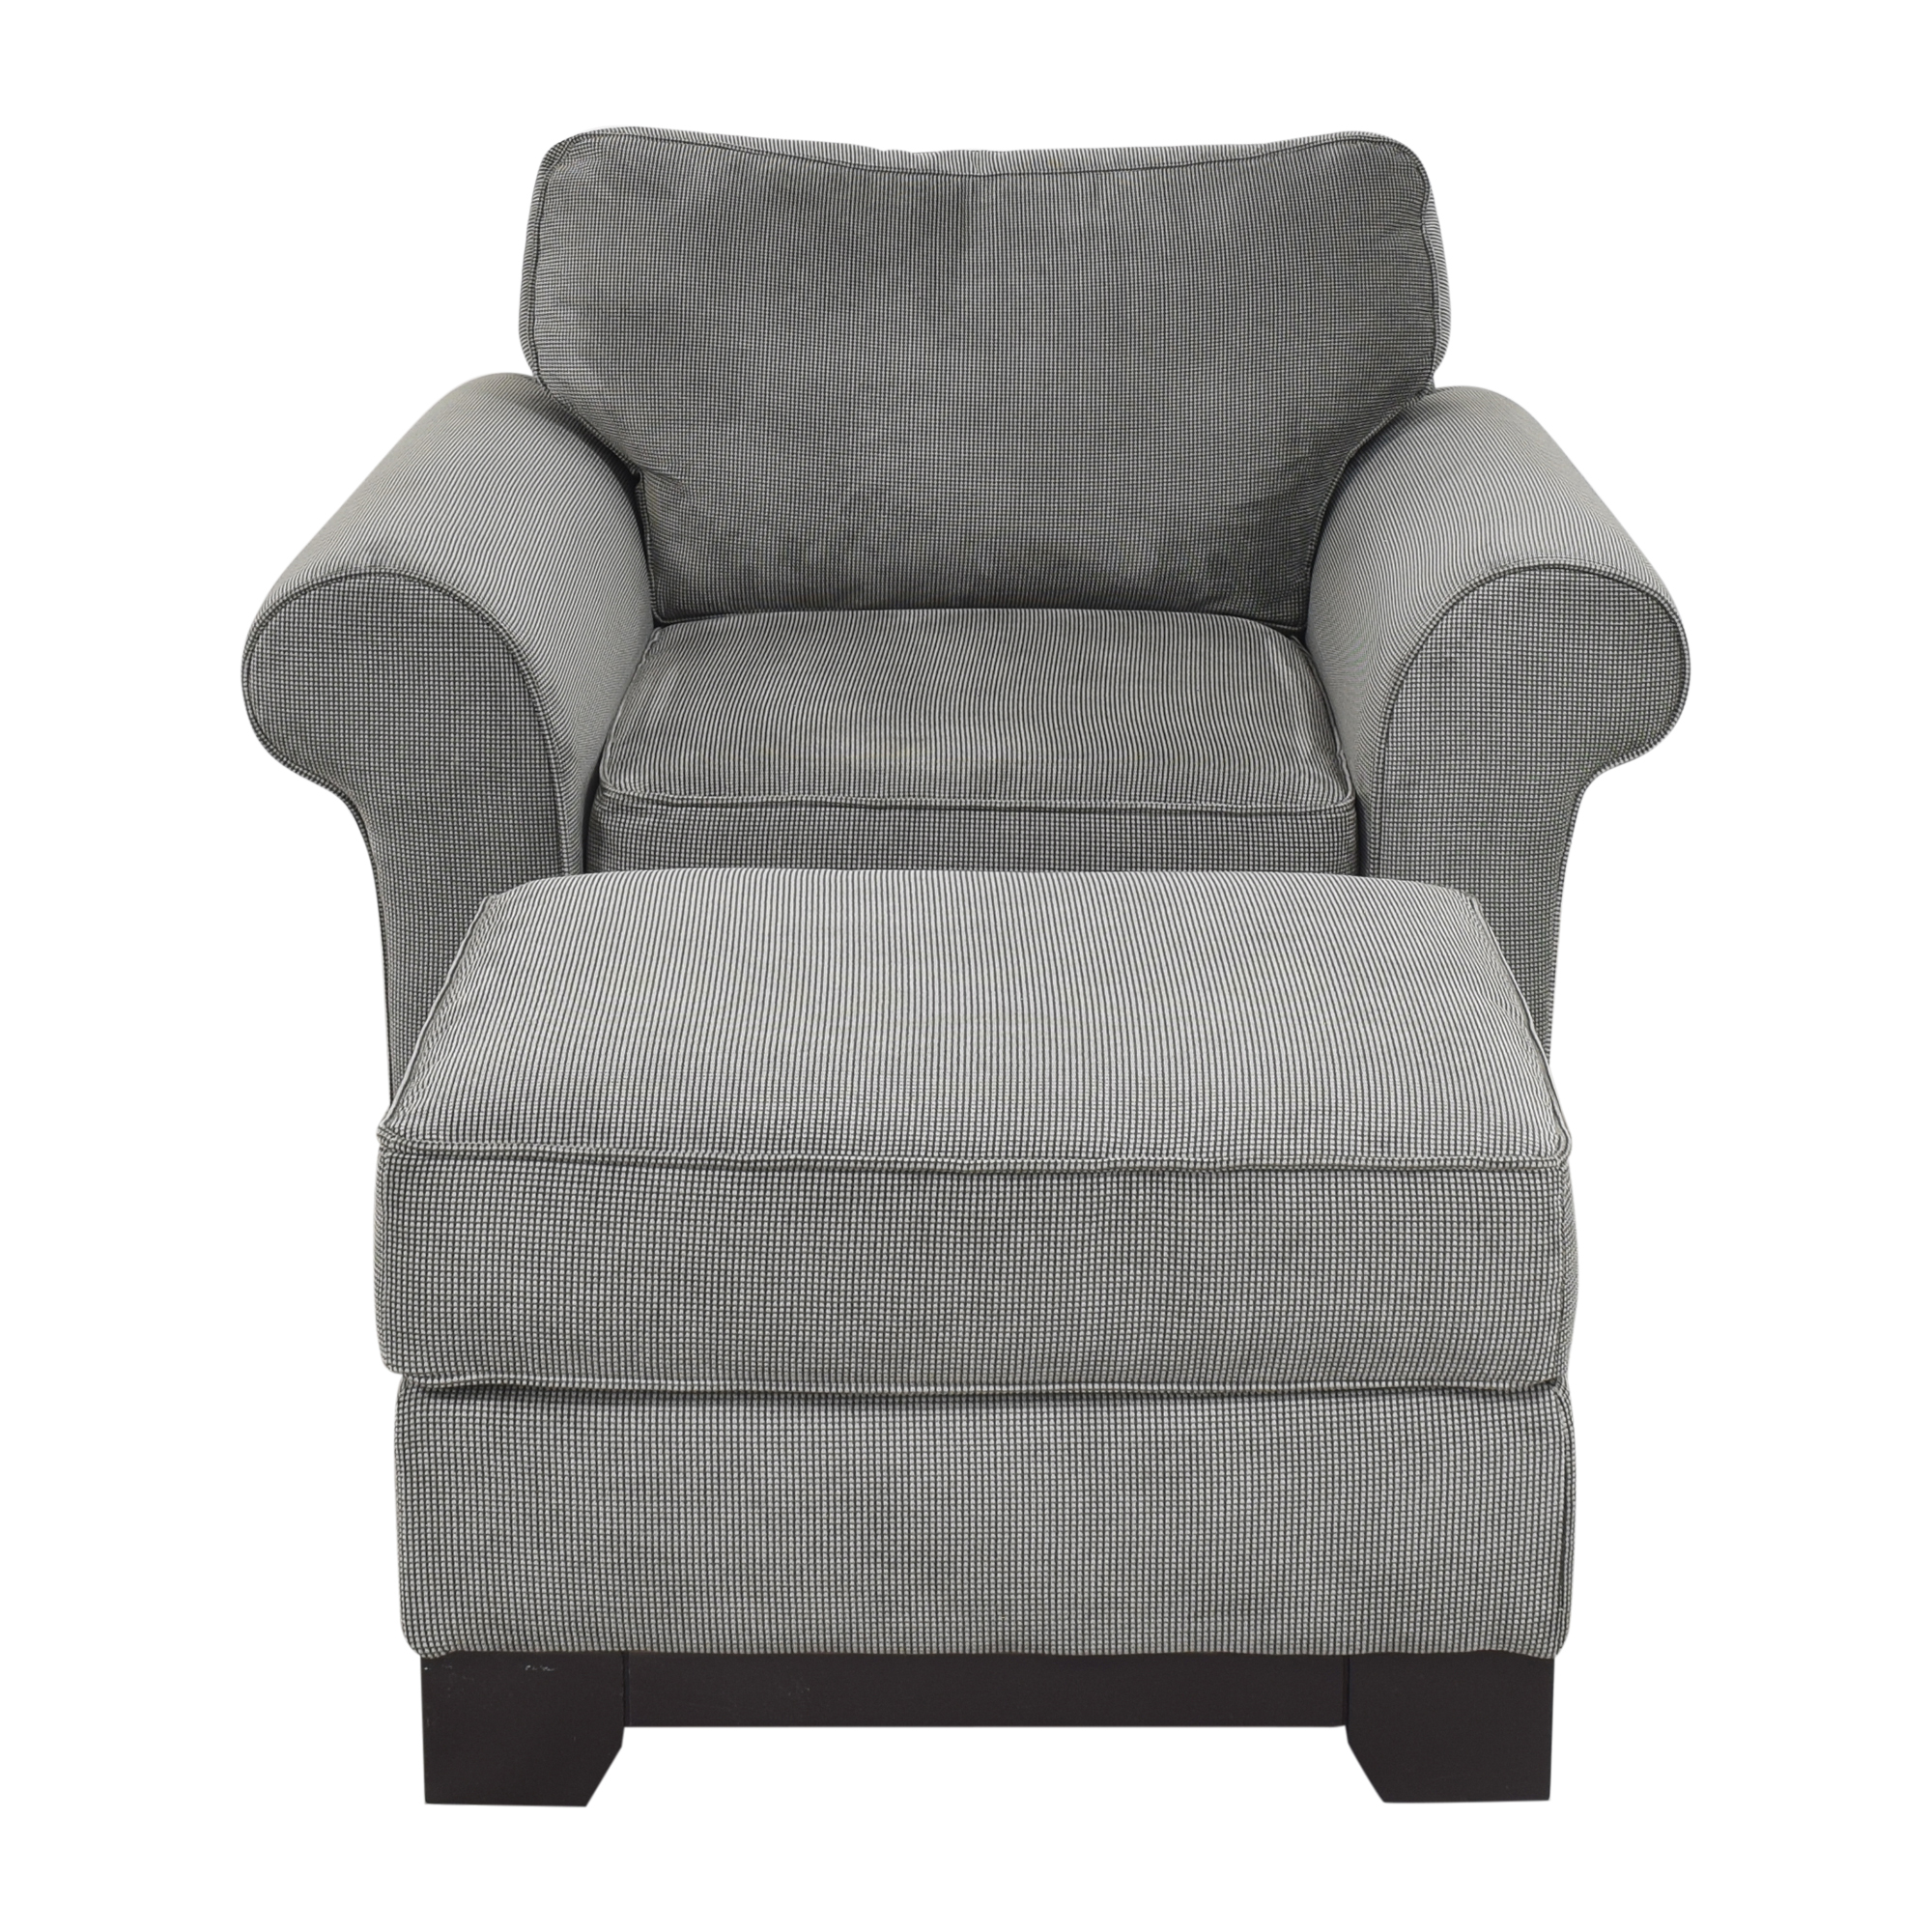 Macy's Macy's Medland Armchair with Ottoman Accent Chairs